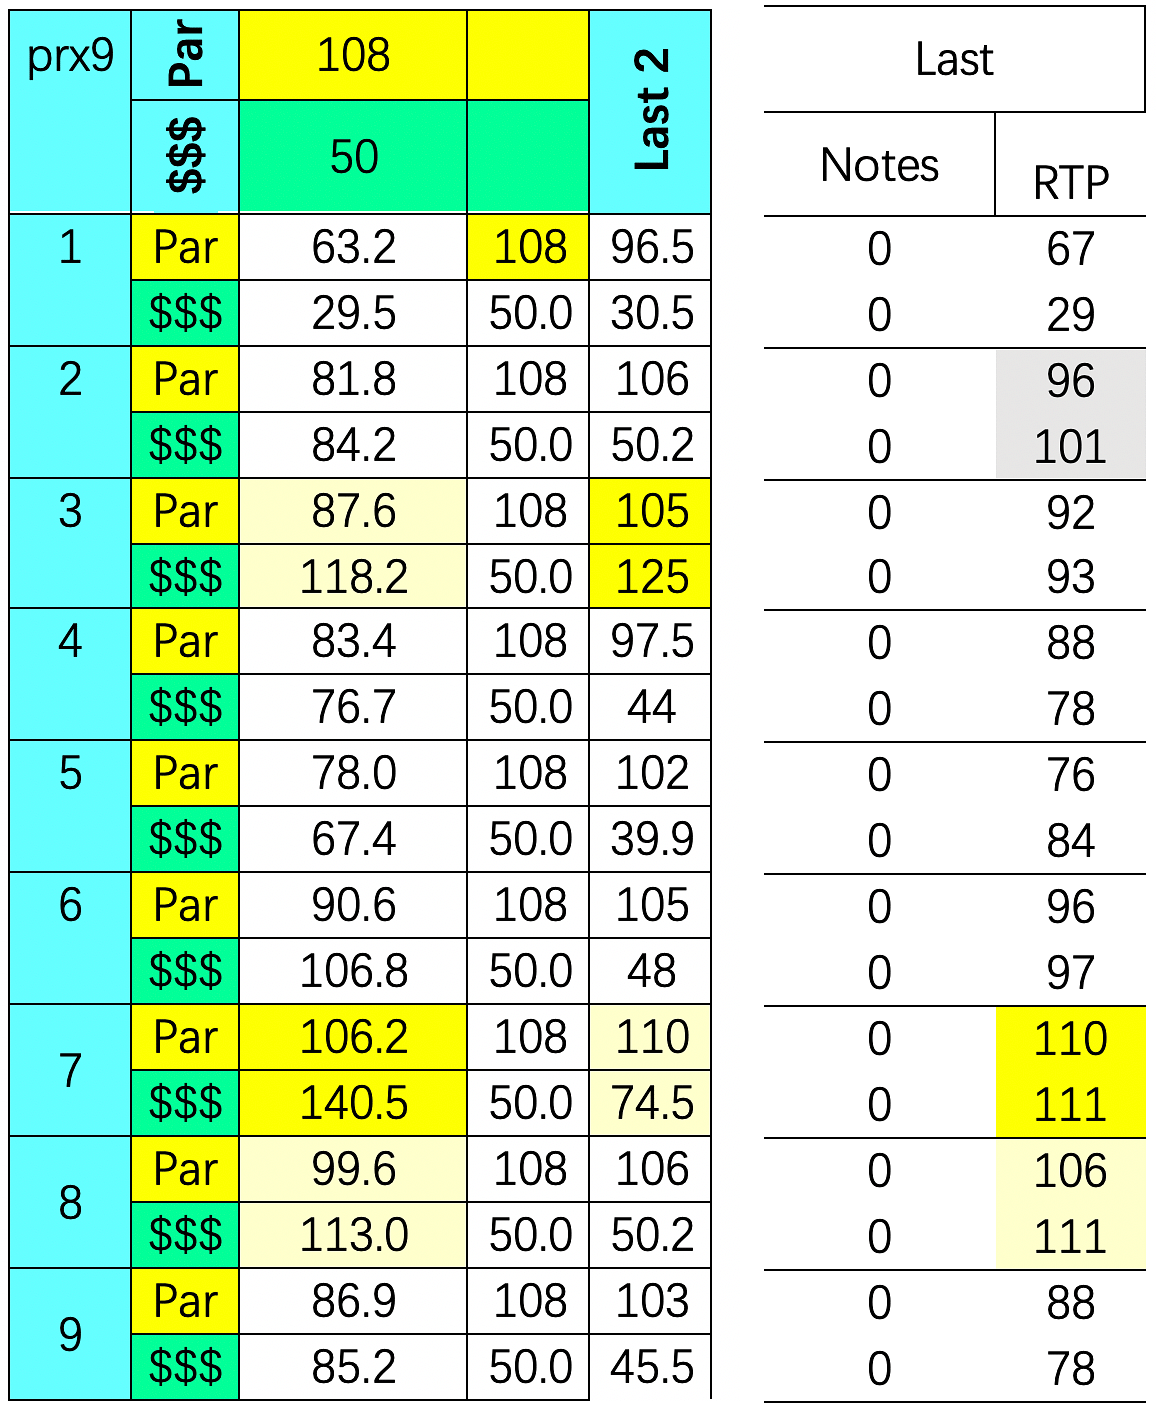 SmartCap analysis of todays' 9th race at Parx.